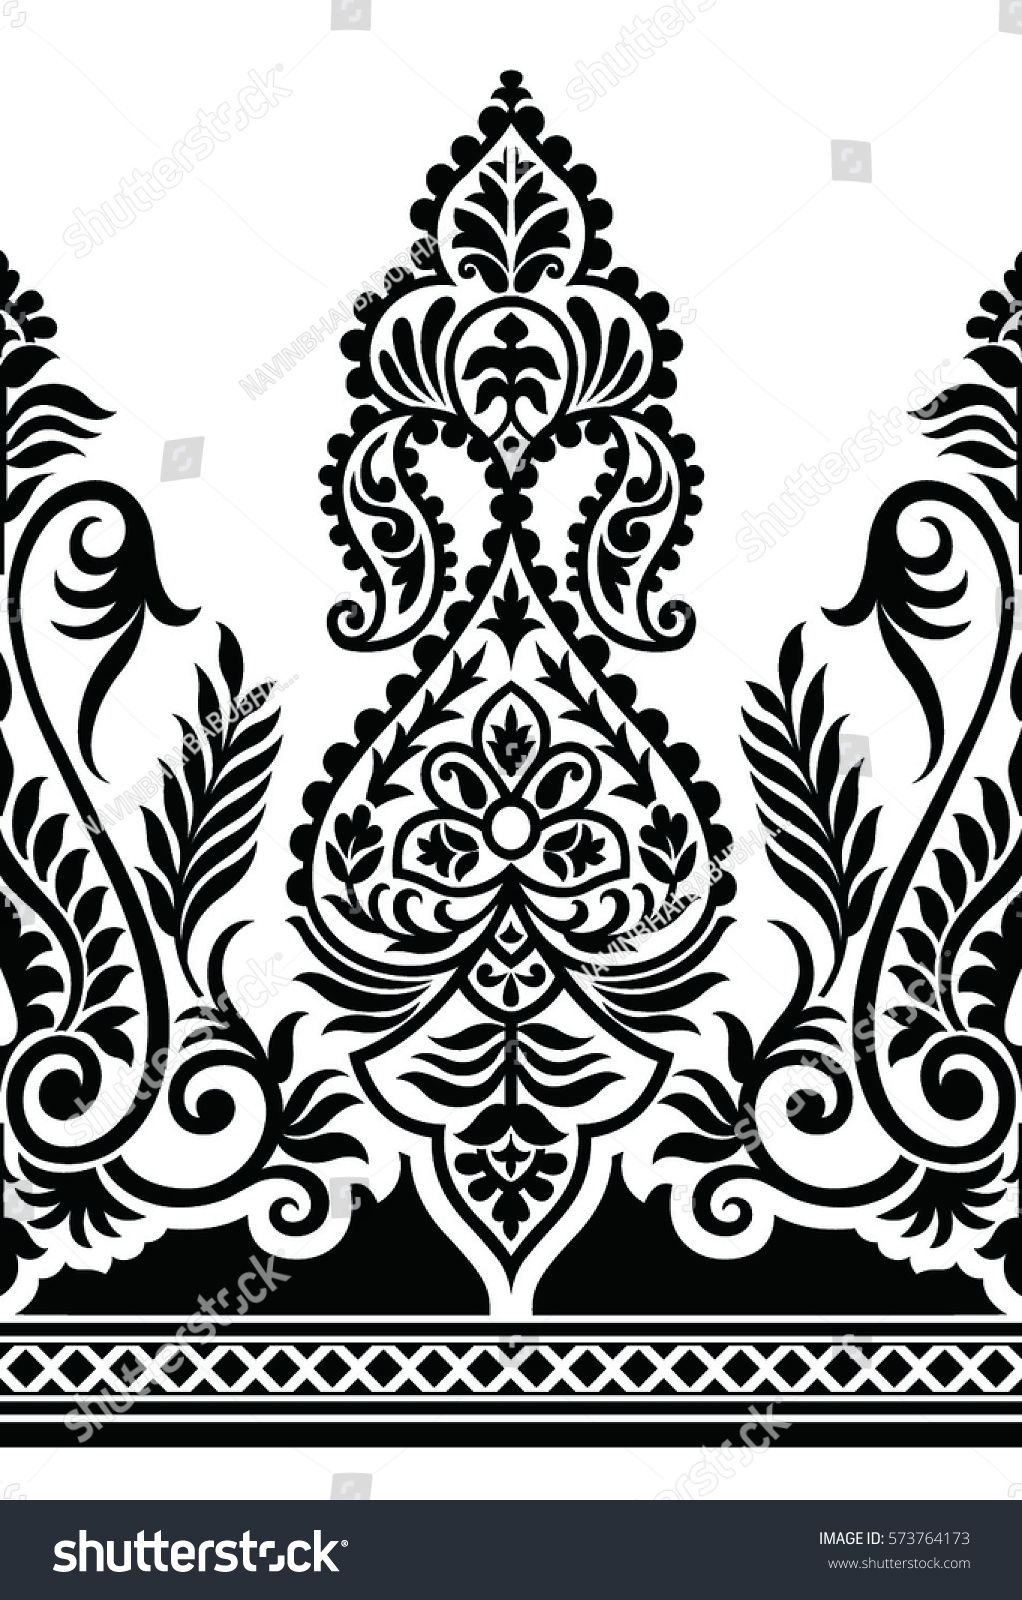 Paisley clipart accent border. Traditional black and white